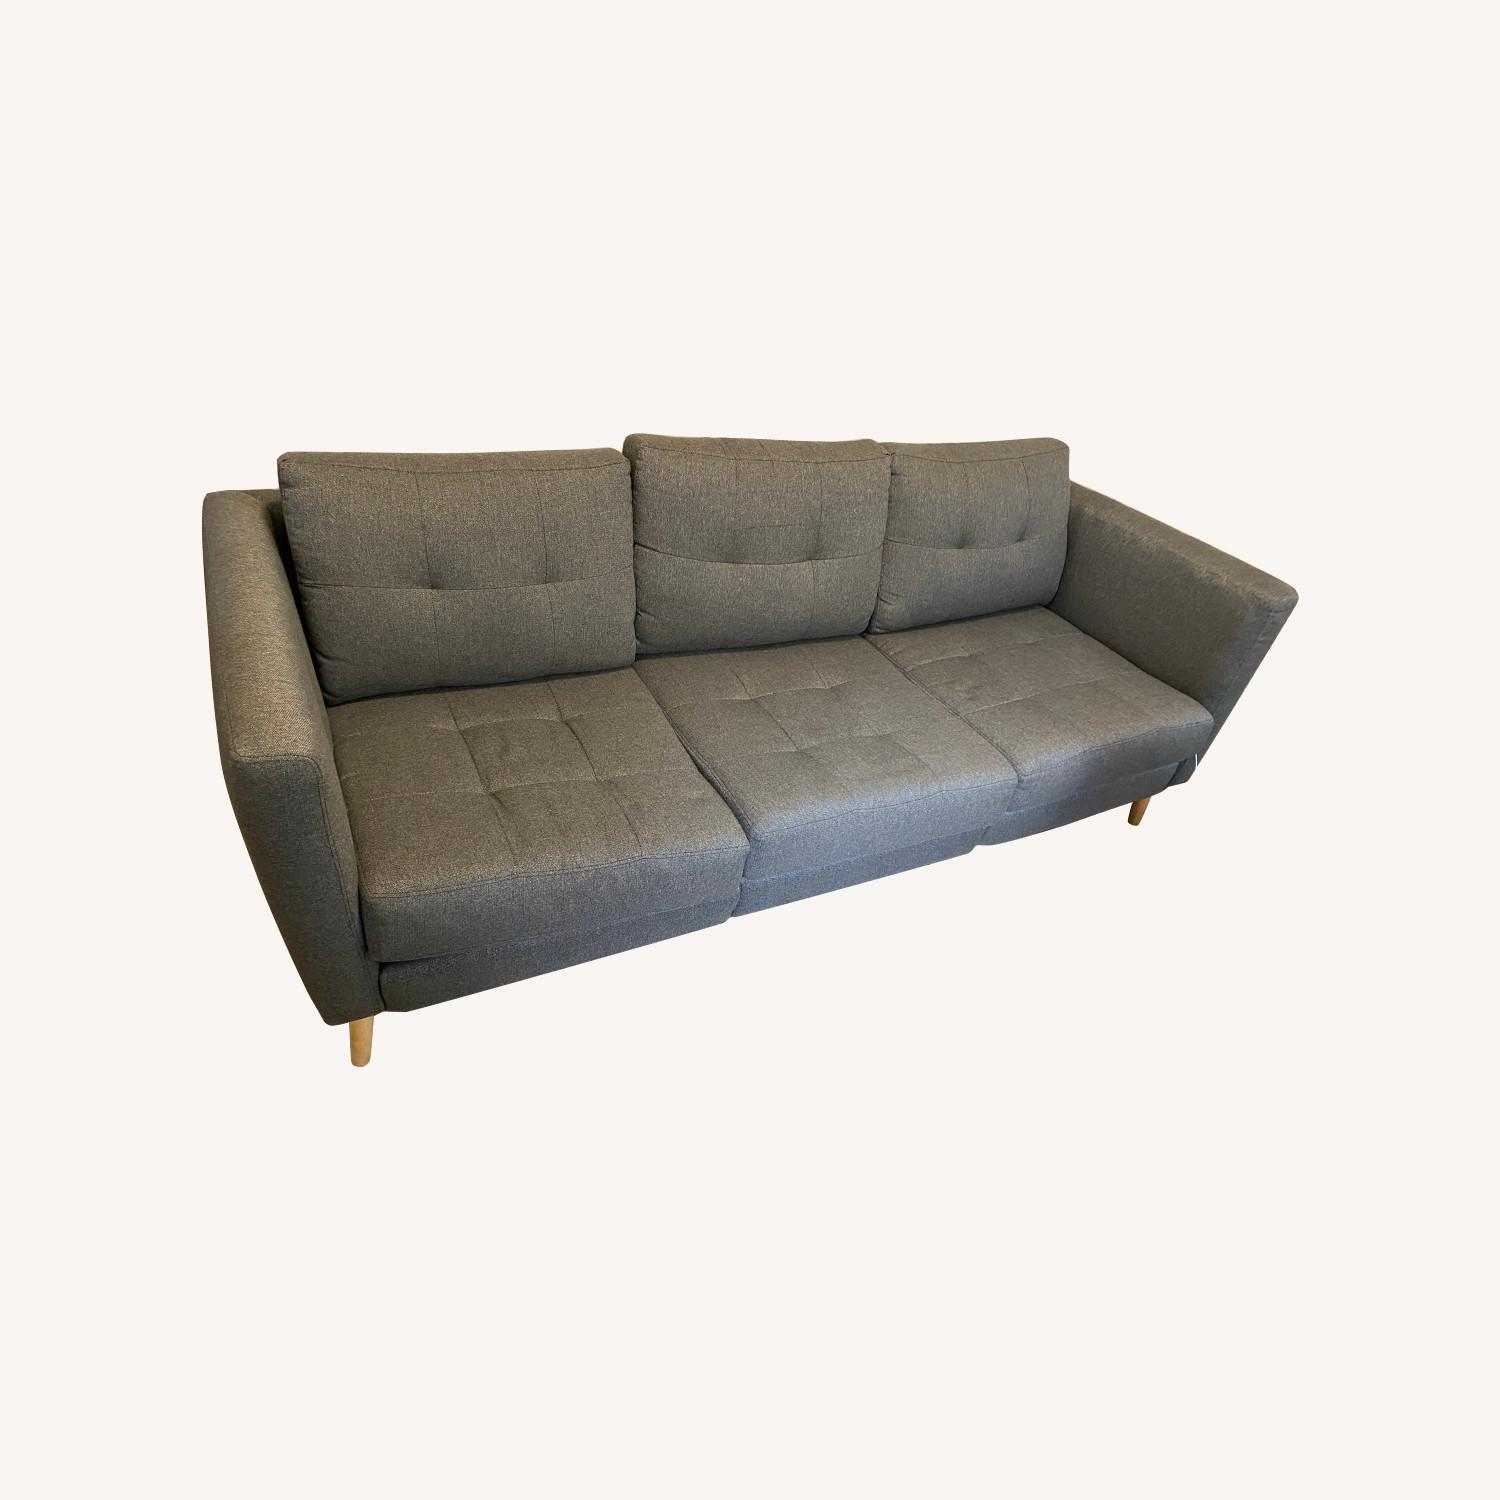 Burrow Modular Couch w/ Built-in USB Port - image-0